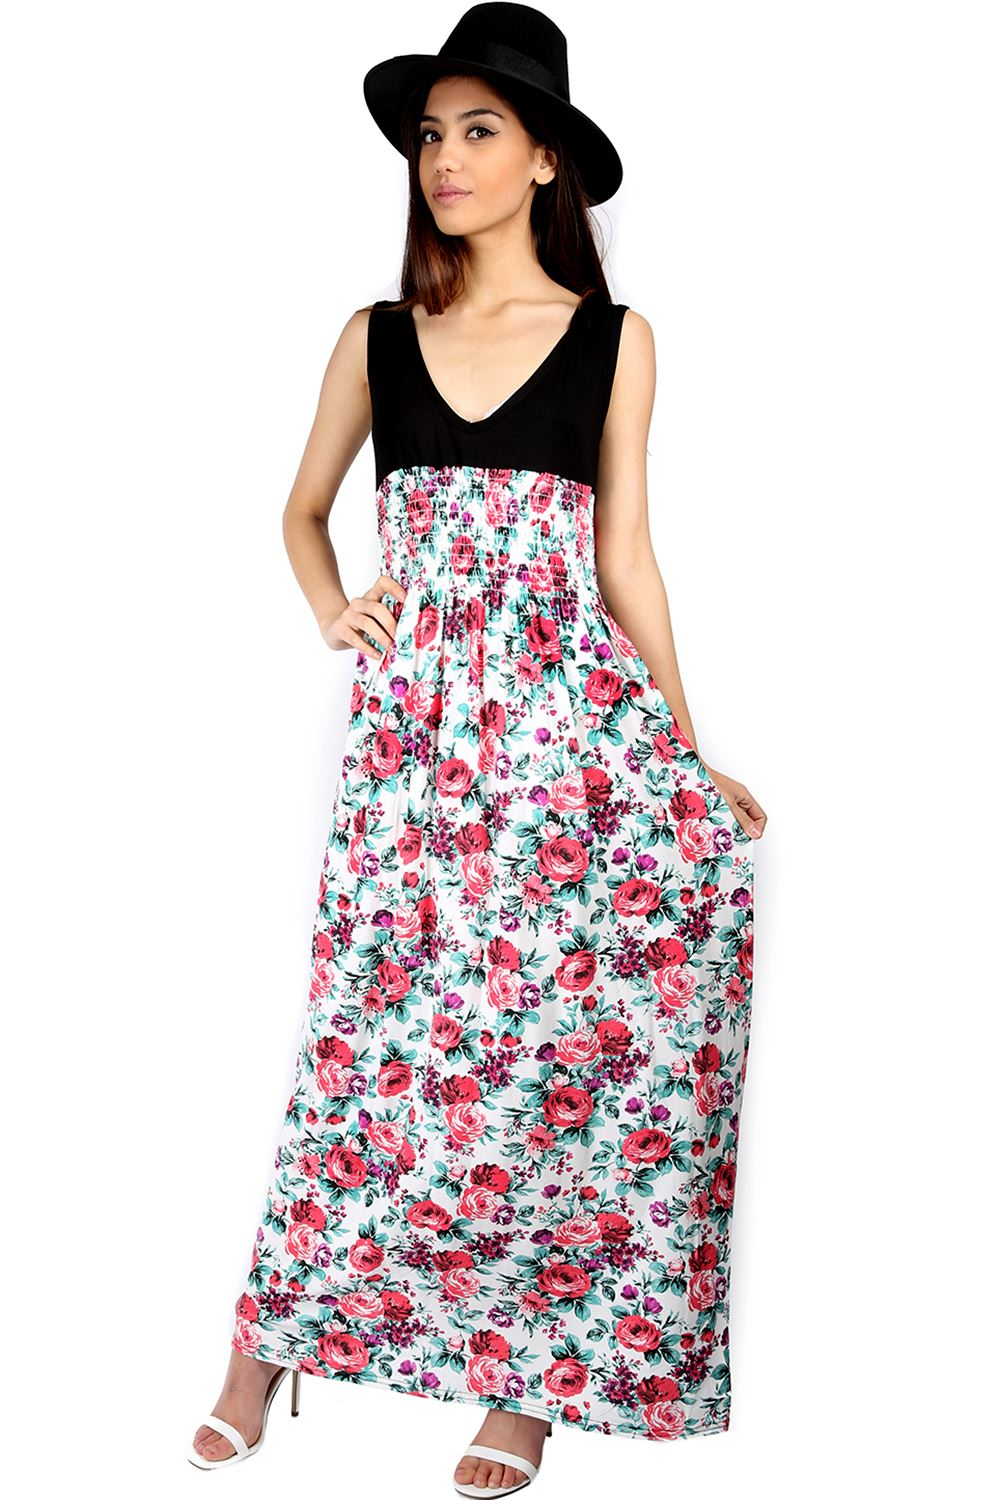 Shop from the world's largest selection and best deals for Women's Floral Dresses. Shop with confidence on eBay!